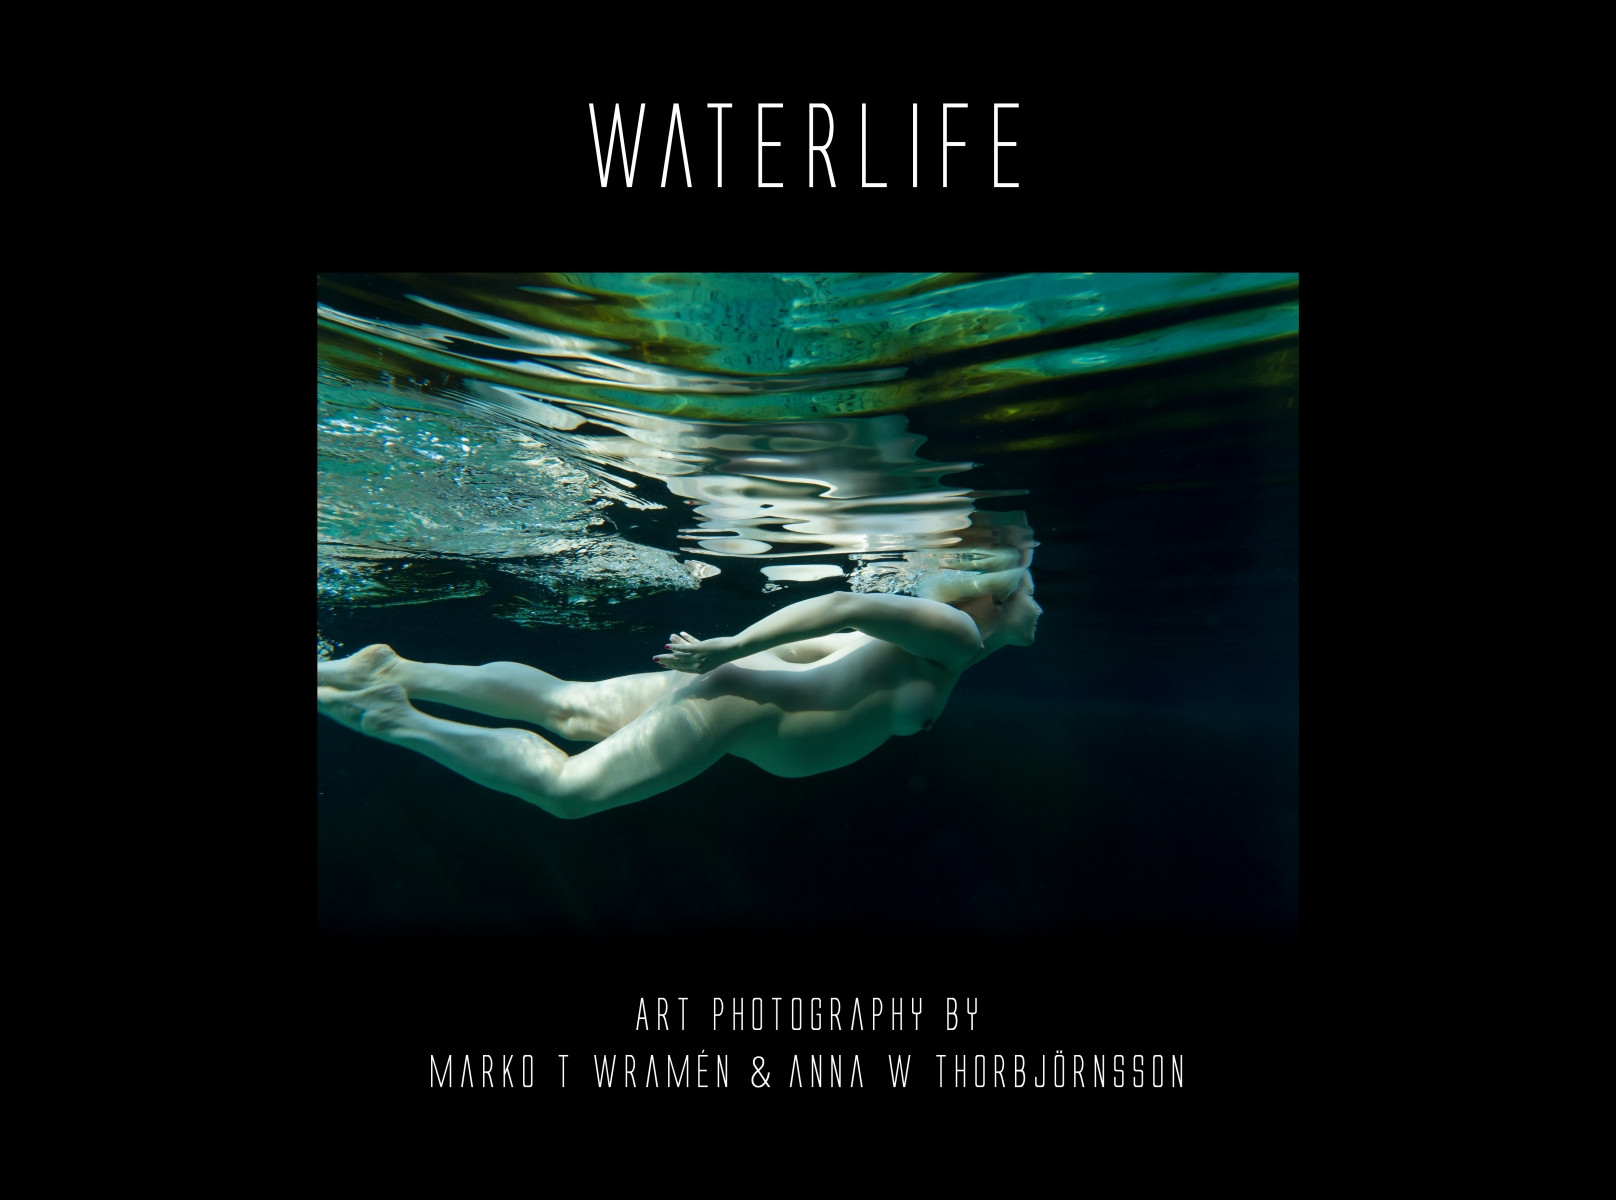 Waterlife-book-front-page-hires